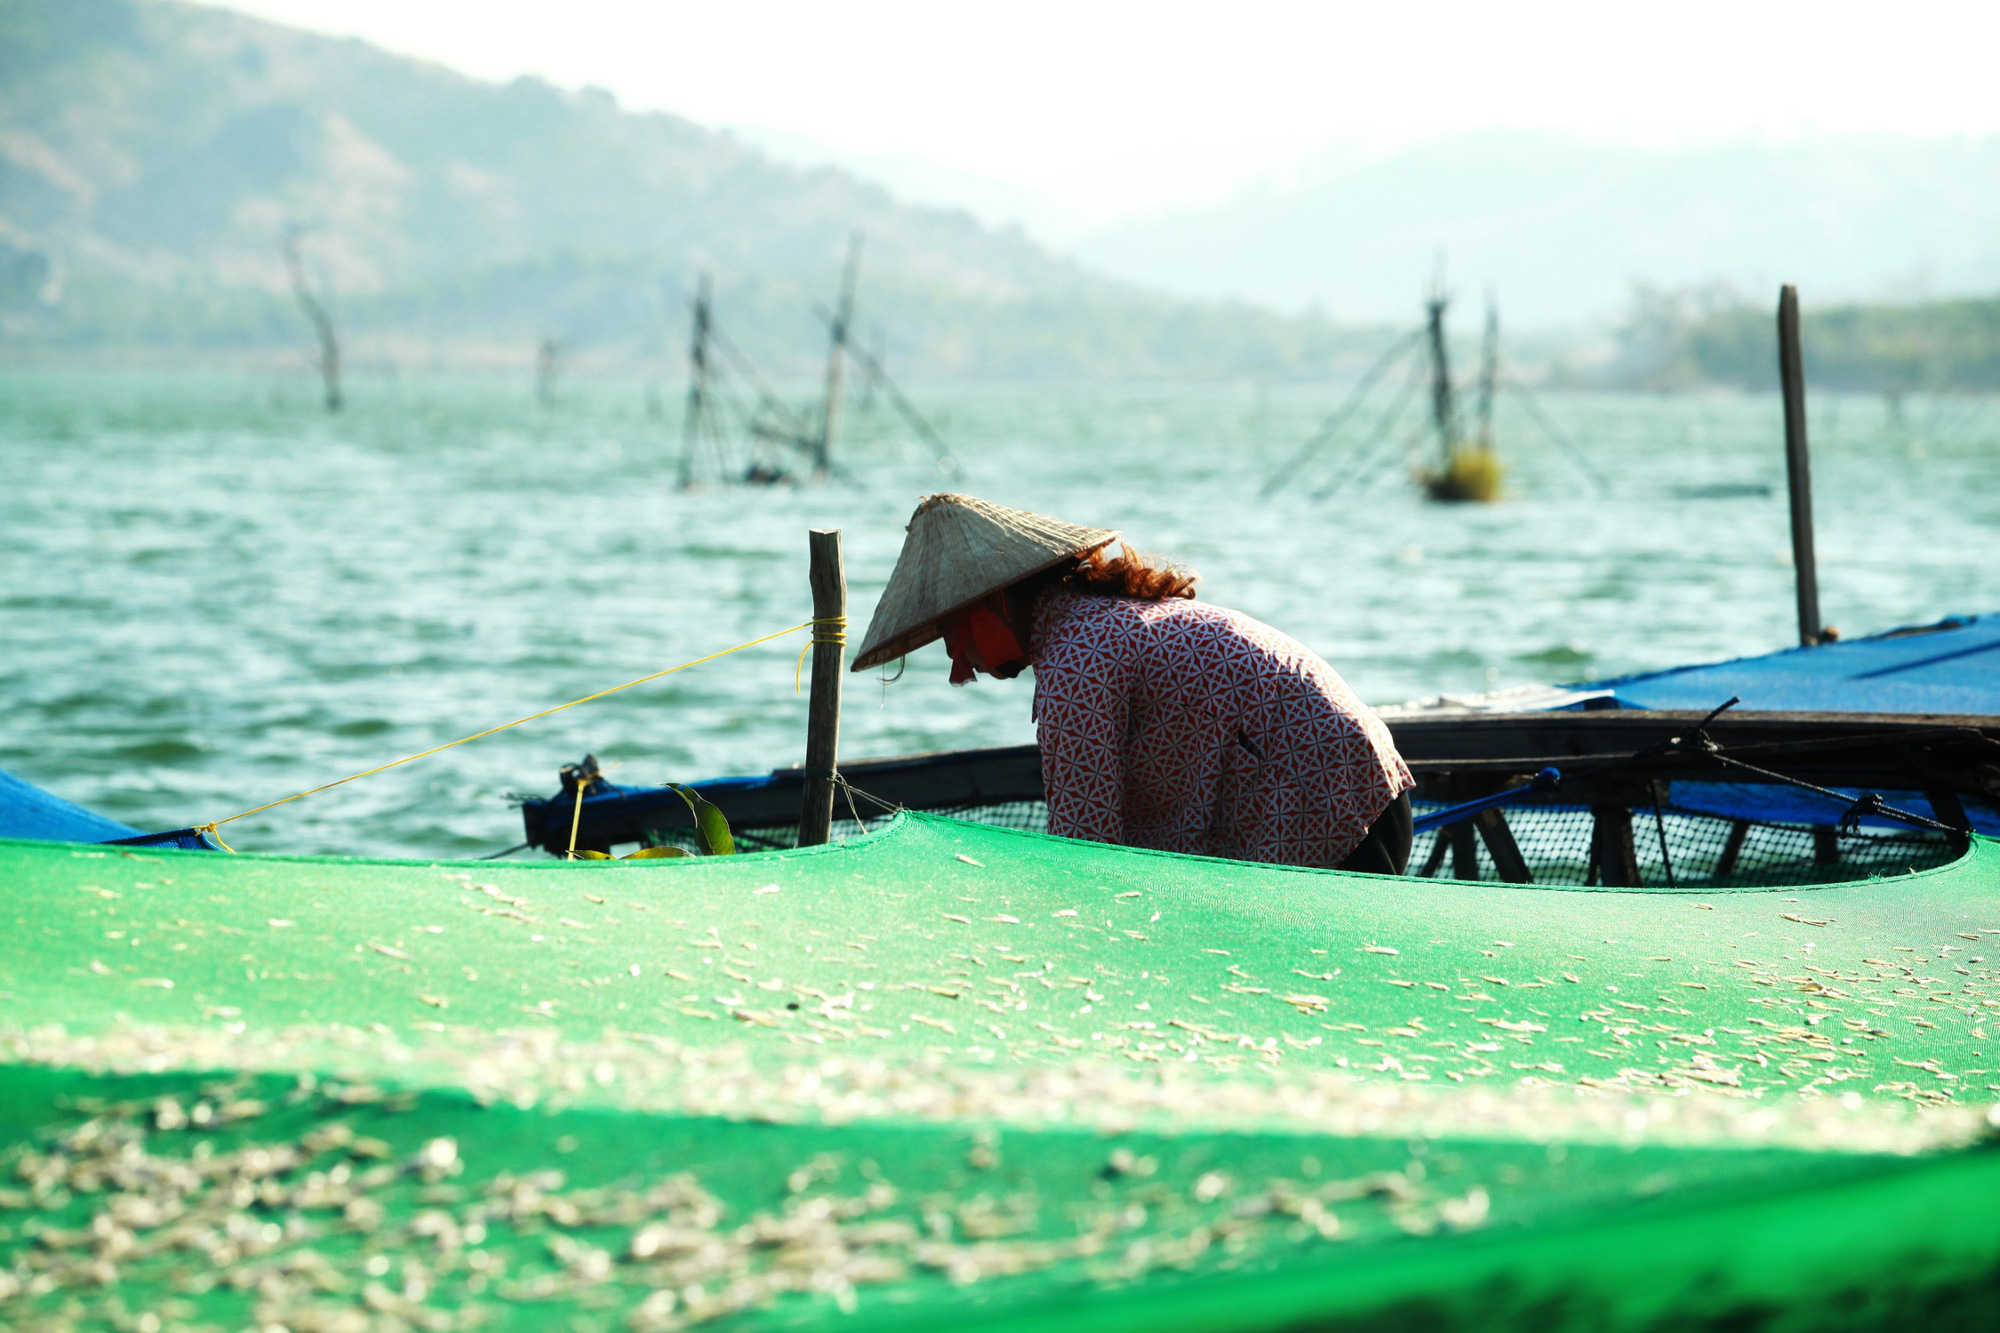 Fresh catch: Check out this off-the-beaten-path fishing village in Vietnam's Central Highlands